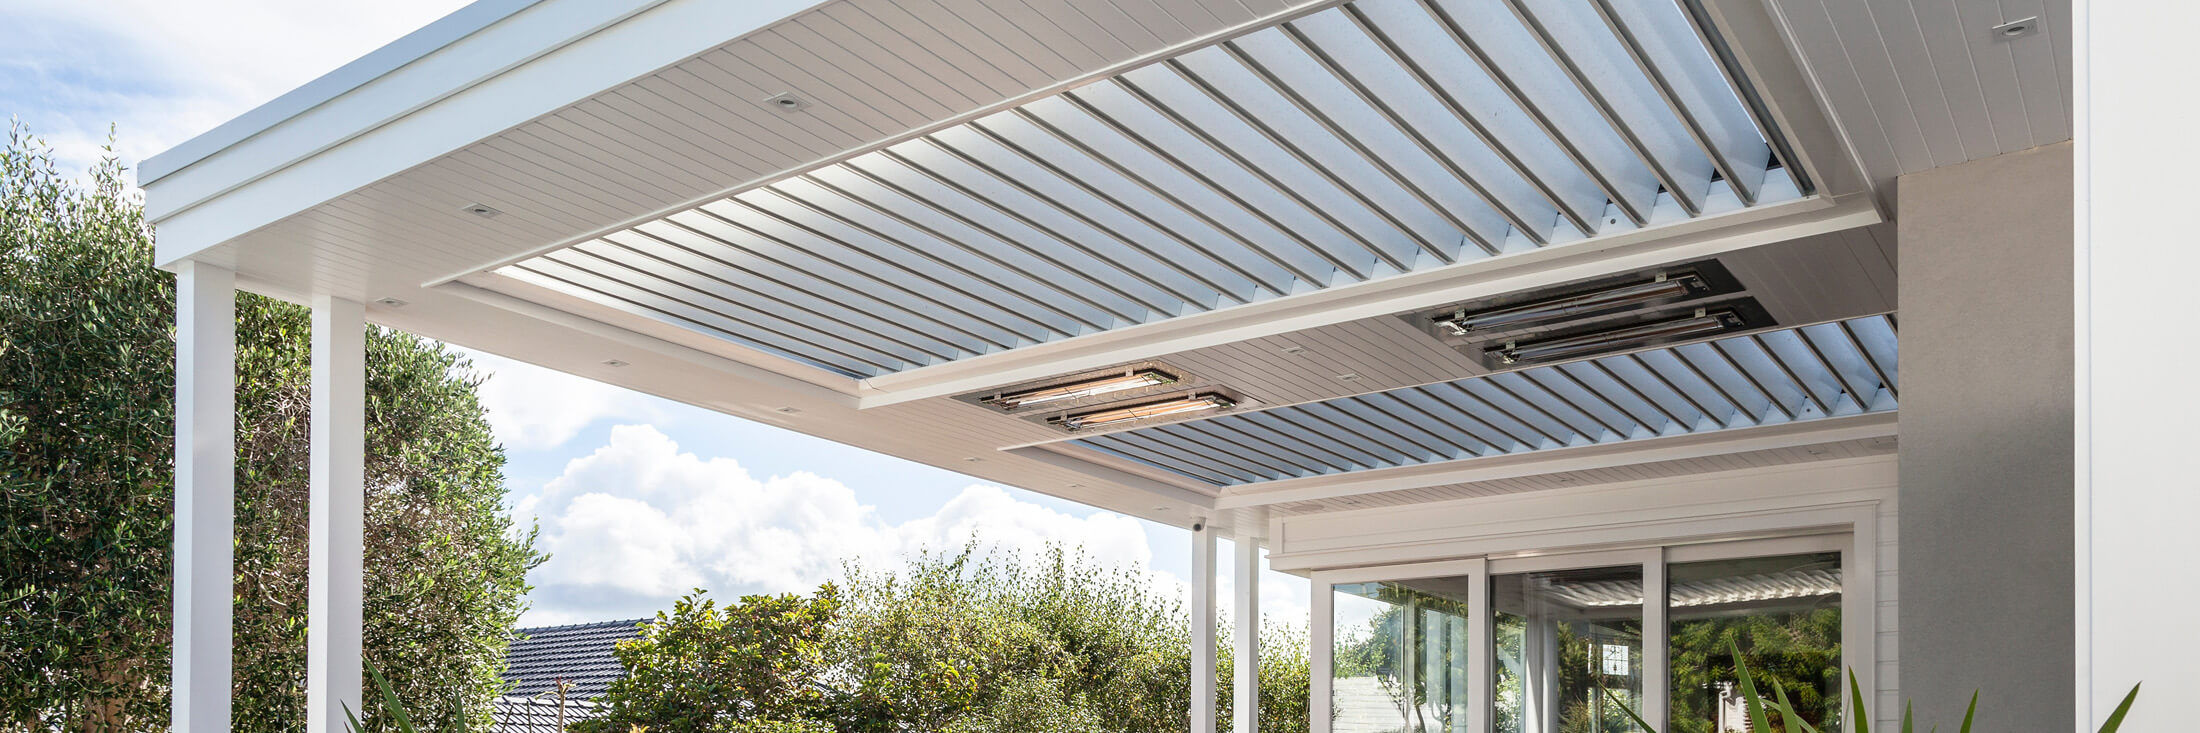 Aurae's operable louvre roof system